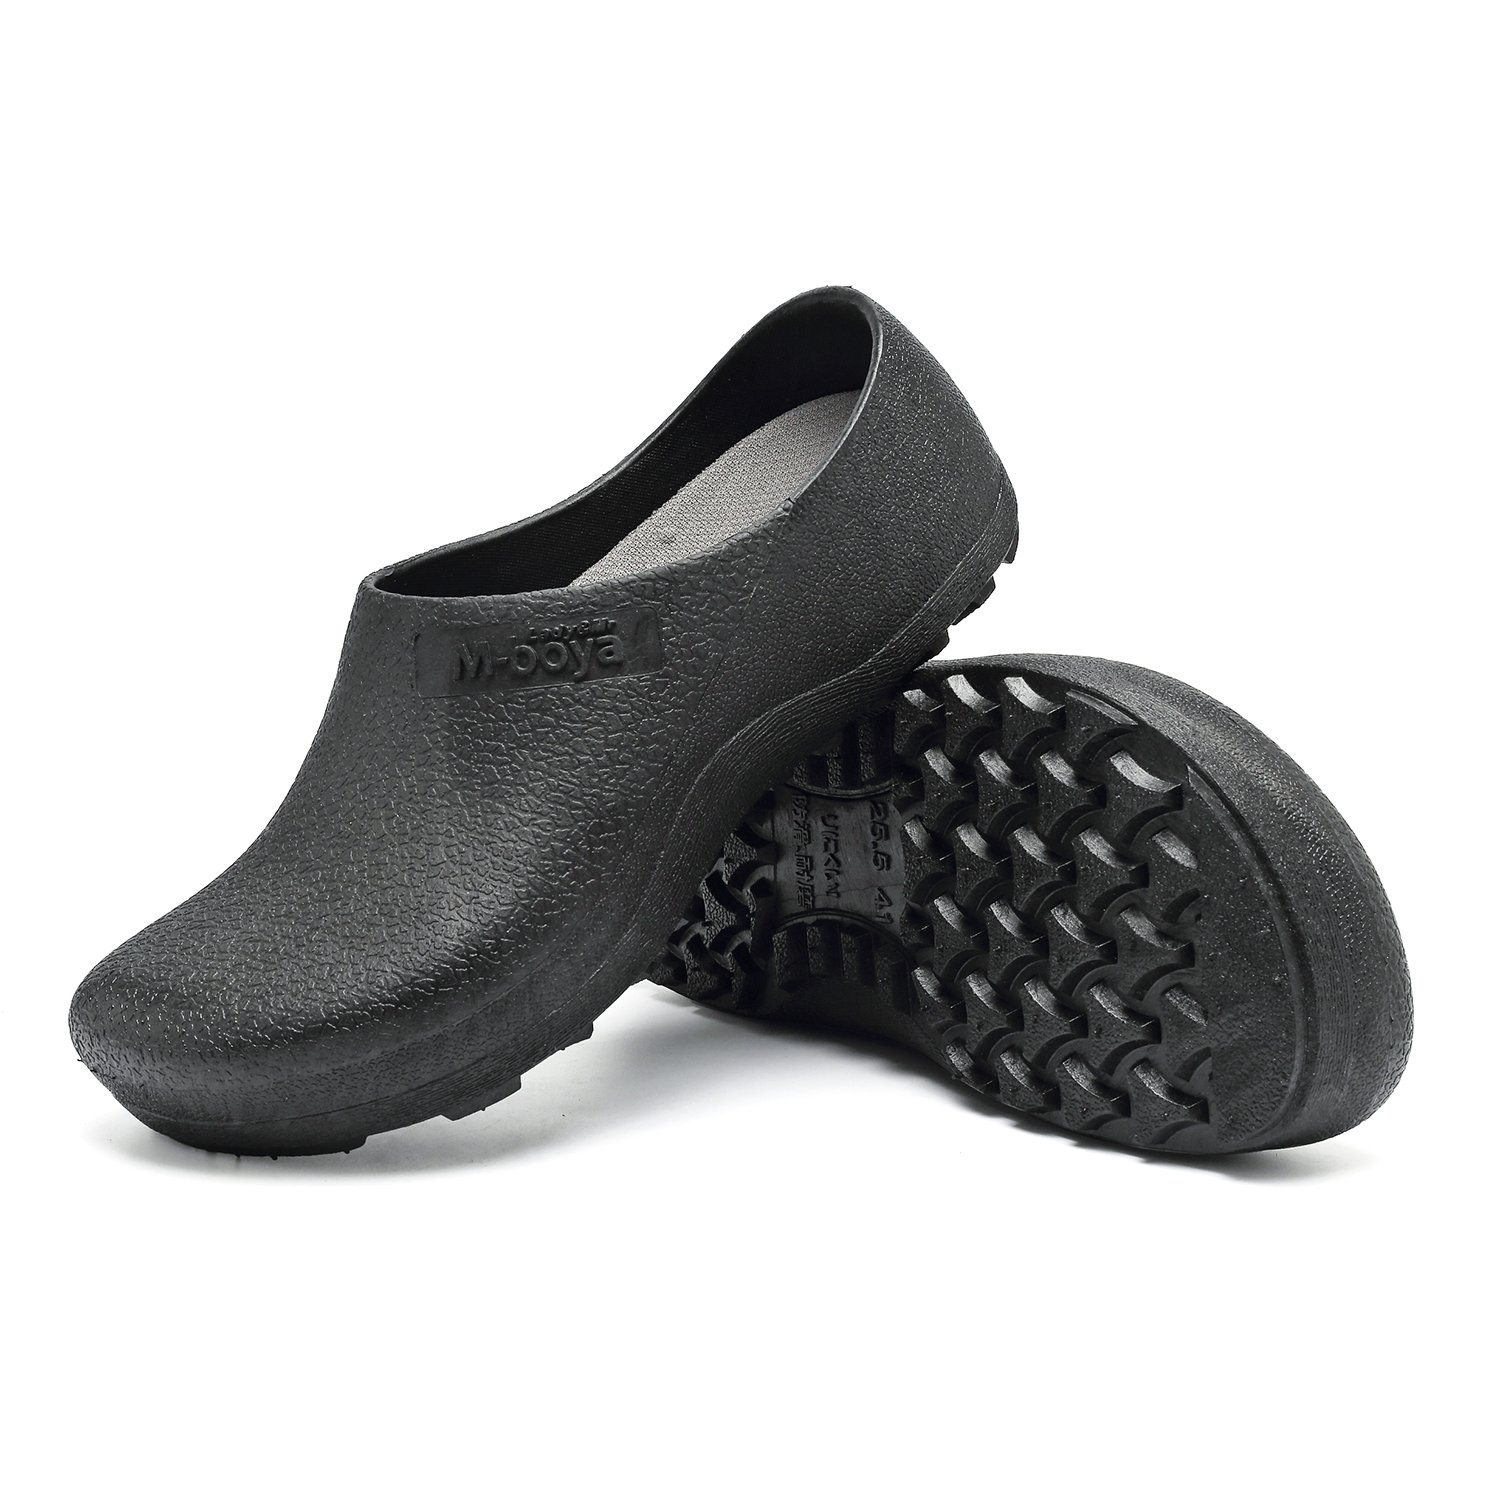 EASTSURE Slip Resistant Shoes Women Men Black Non Slip Kitchen Work Shoes Nurse Chef,US 9.5,EU 43